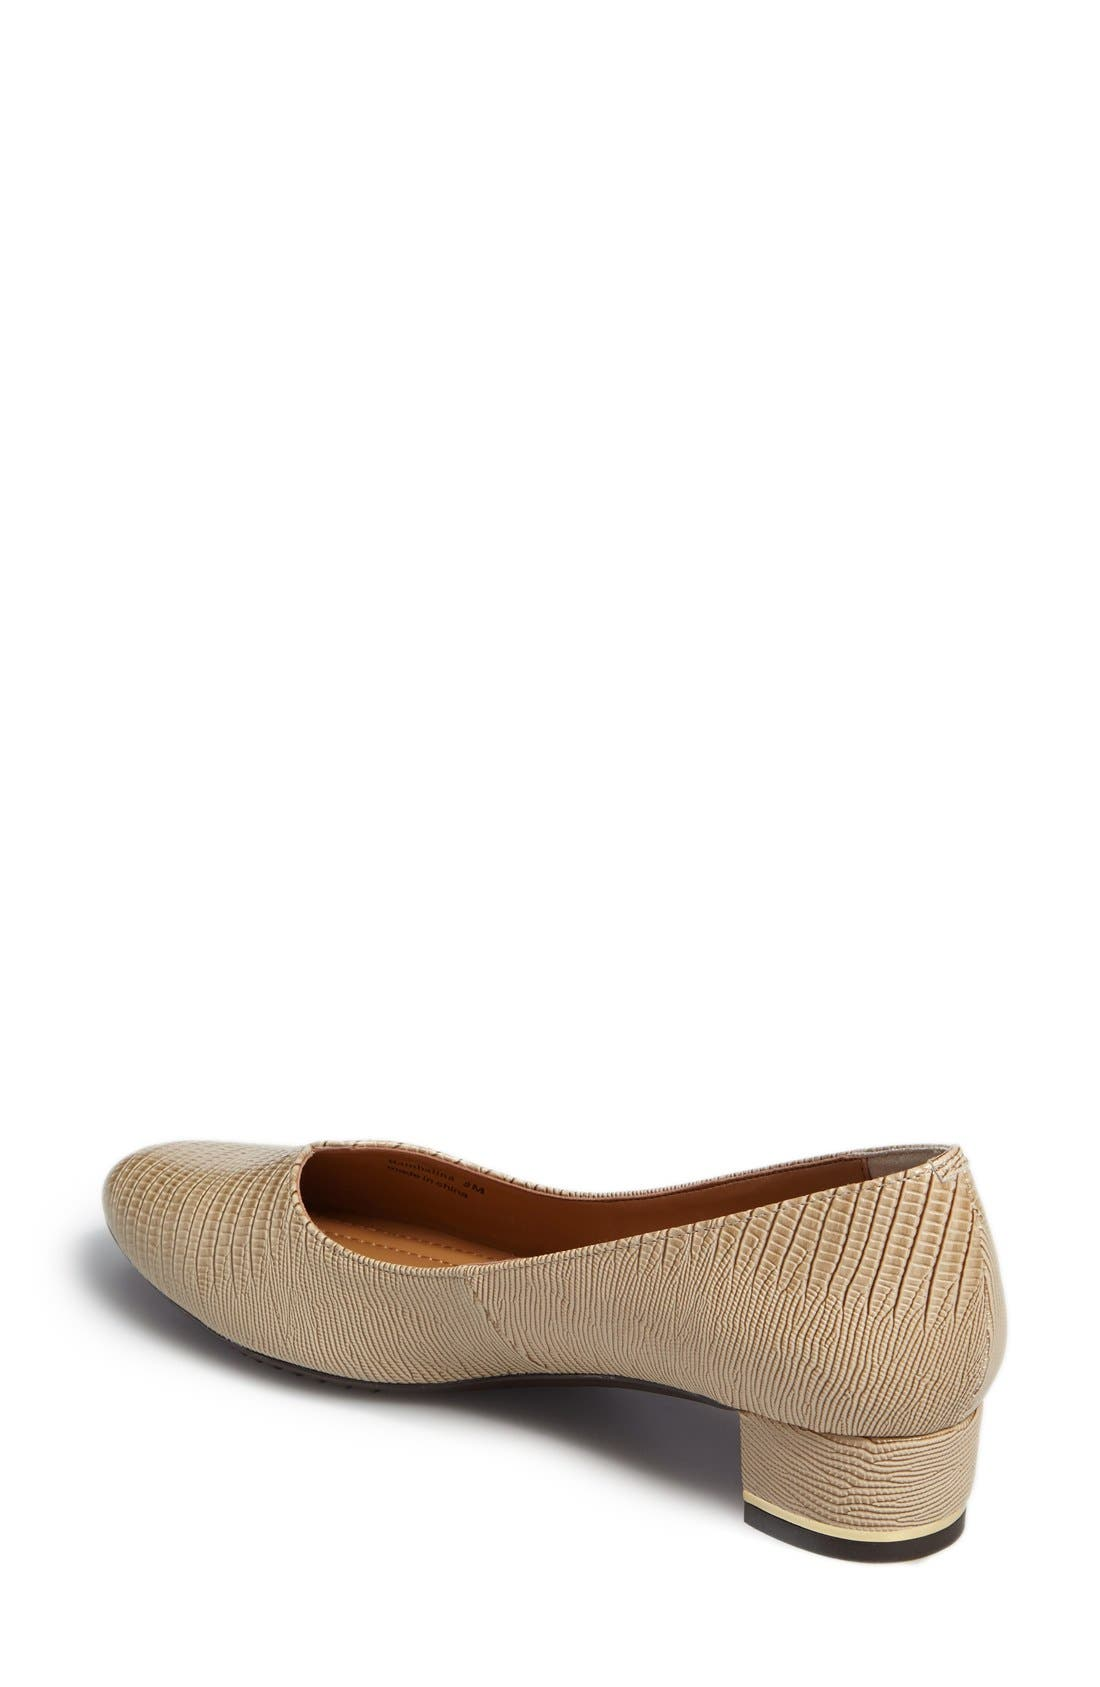 Bambalina Block Heel Pump,                             Alternate thumbnail 2, color,                             Taupe Faux Leather